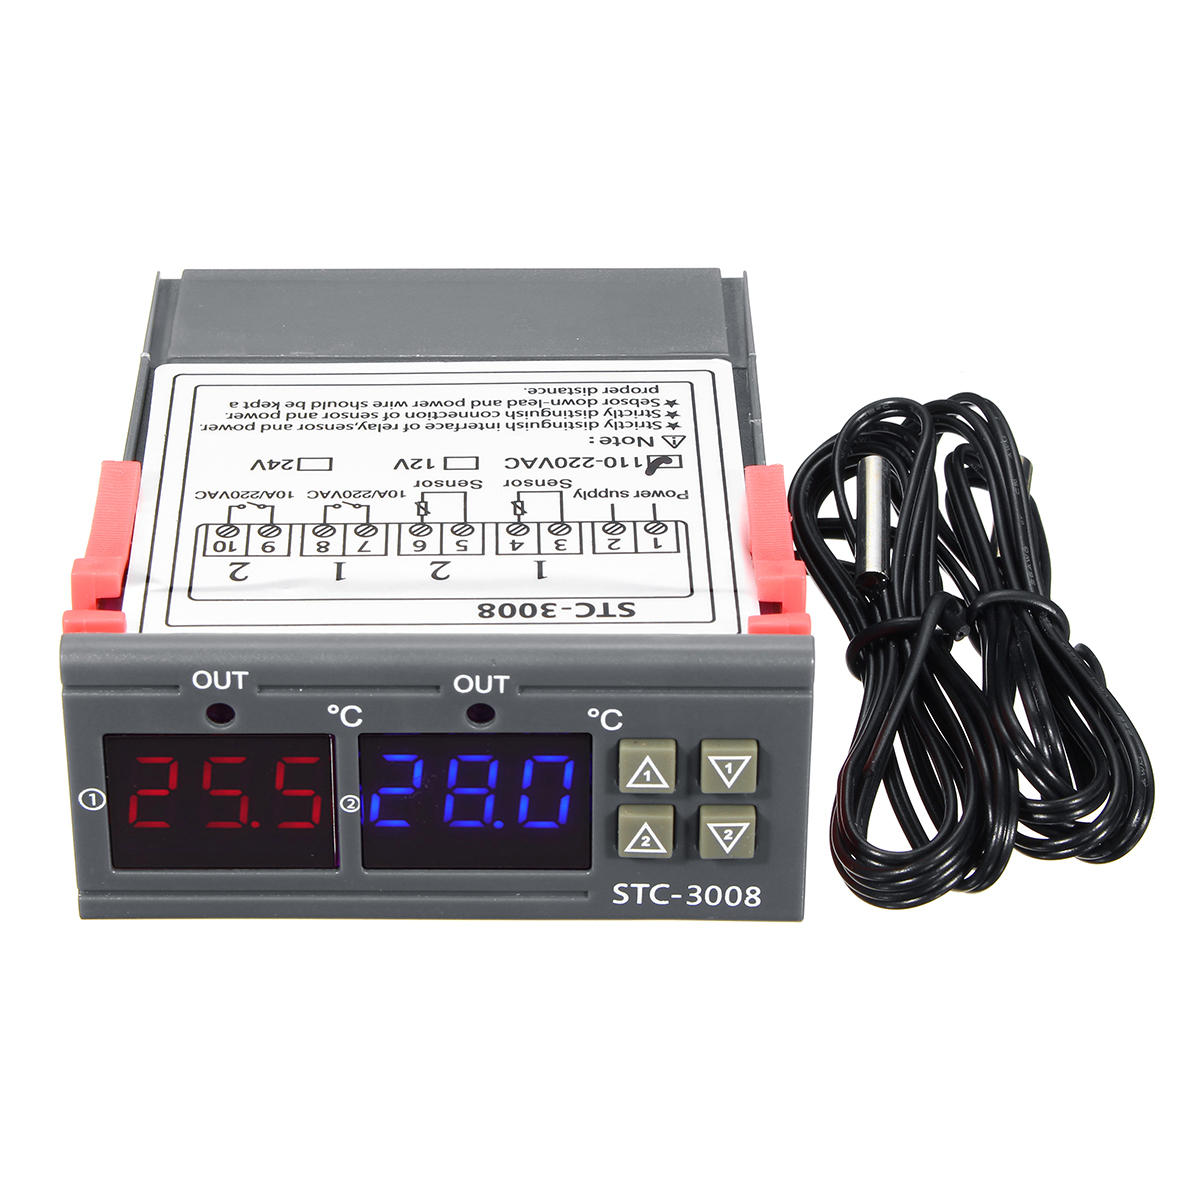 110-220V STC-3028 Dispaly Temperature Humidity Thermostat Controller Temperature Humidity Control Thermometer Hygrometer Controller